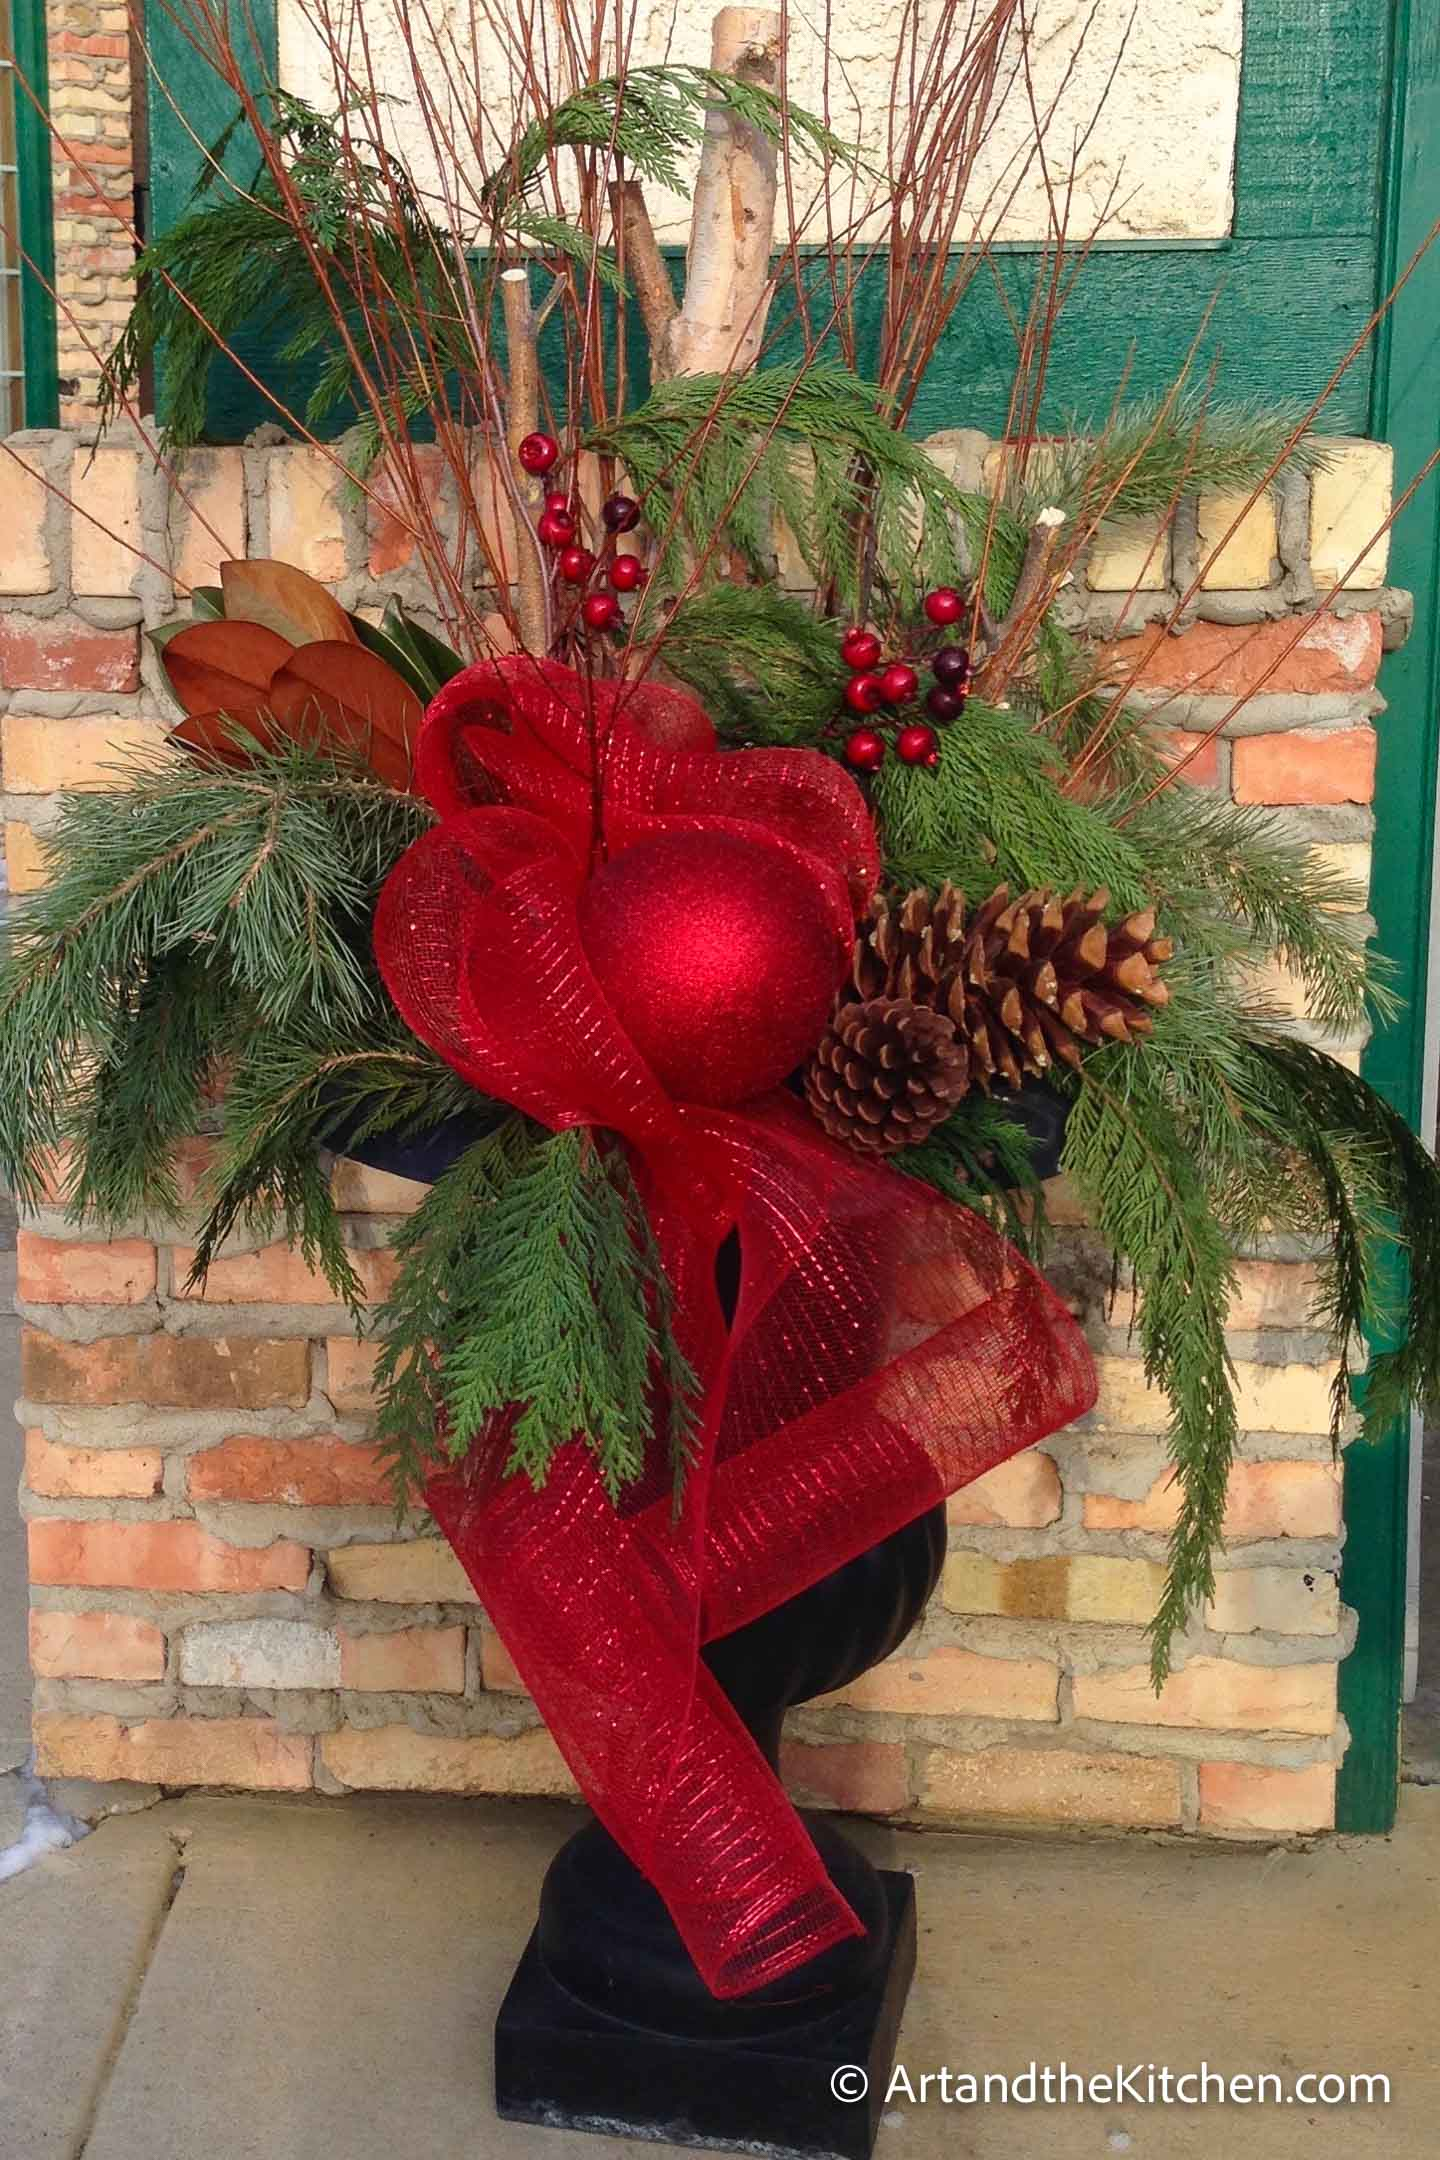 Outdoor Christmas planter with greenery, tree branches and decorations.